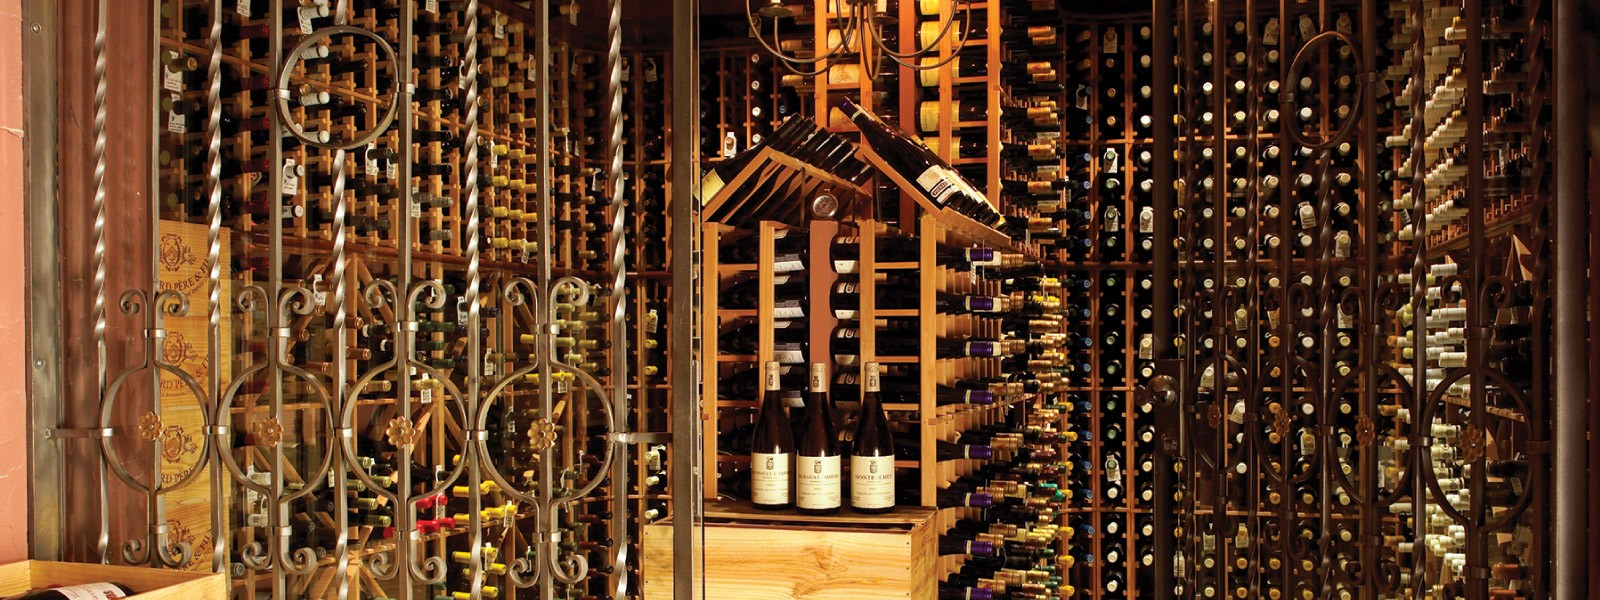 Wine Cellar Pictures Lake Louise Hotel Spa Wine Cellar The Post Hotel